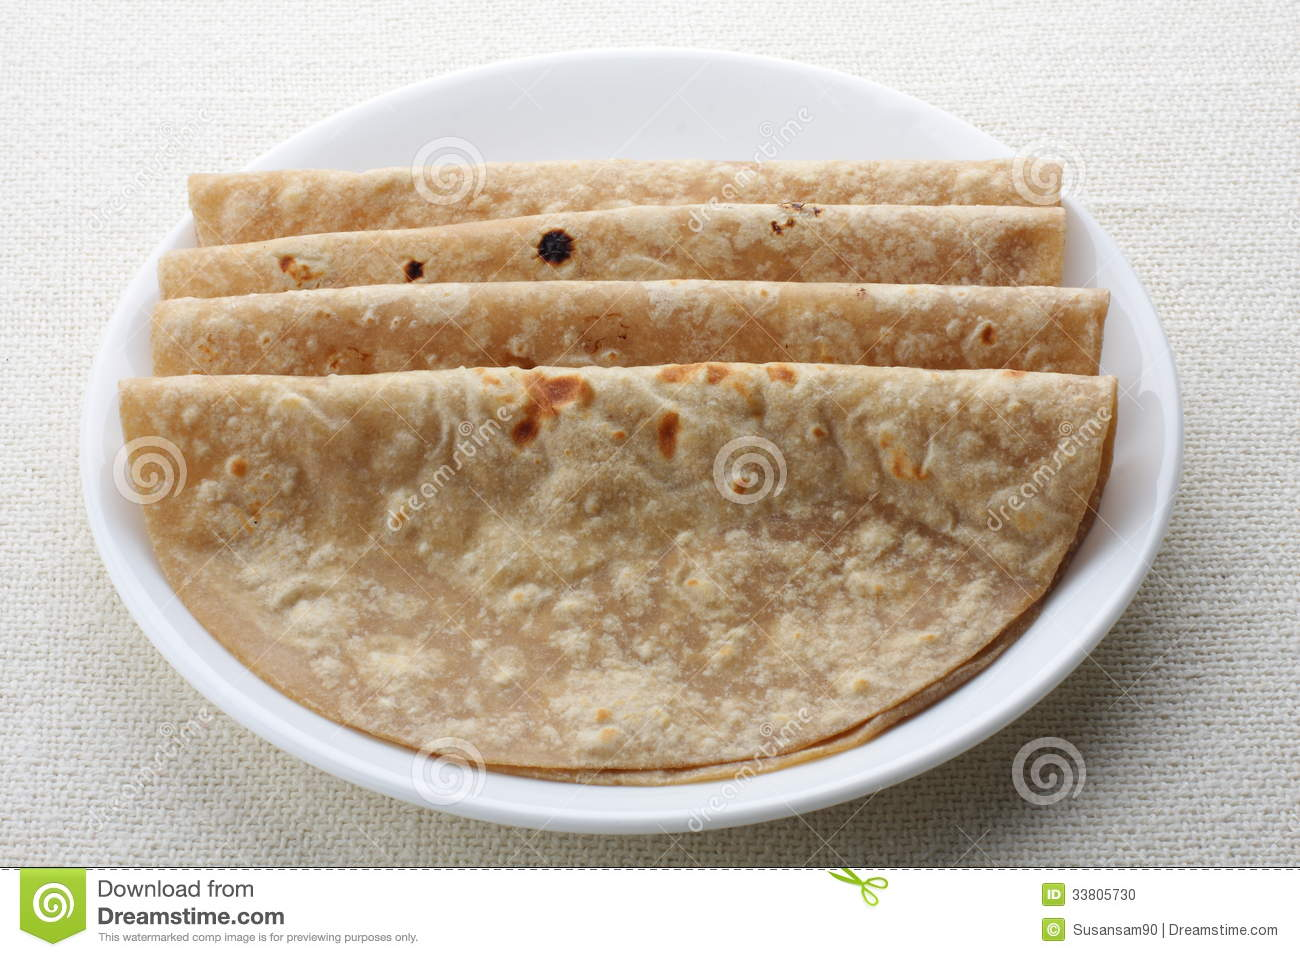 Chapati stock photo. Image of dinner, dish, basic, heavy ...